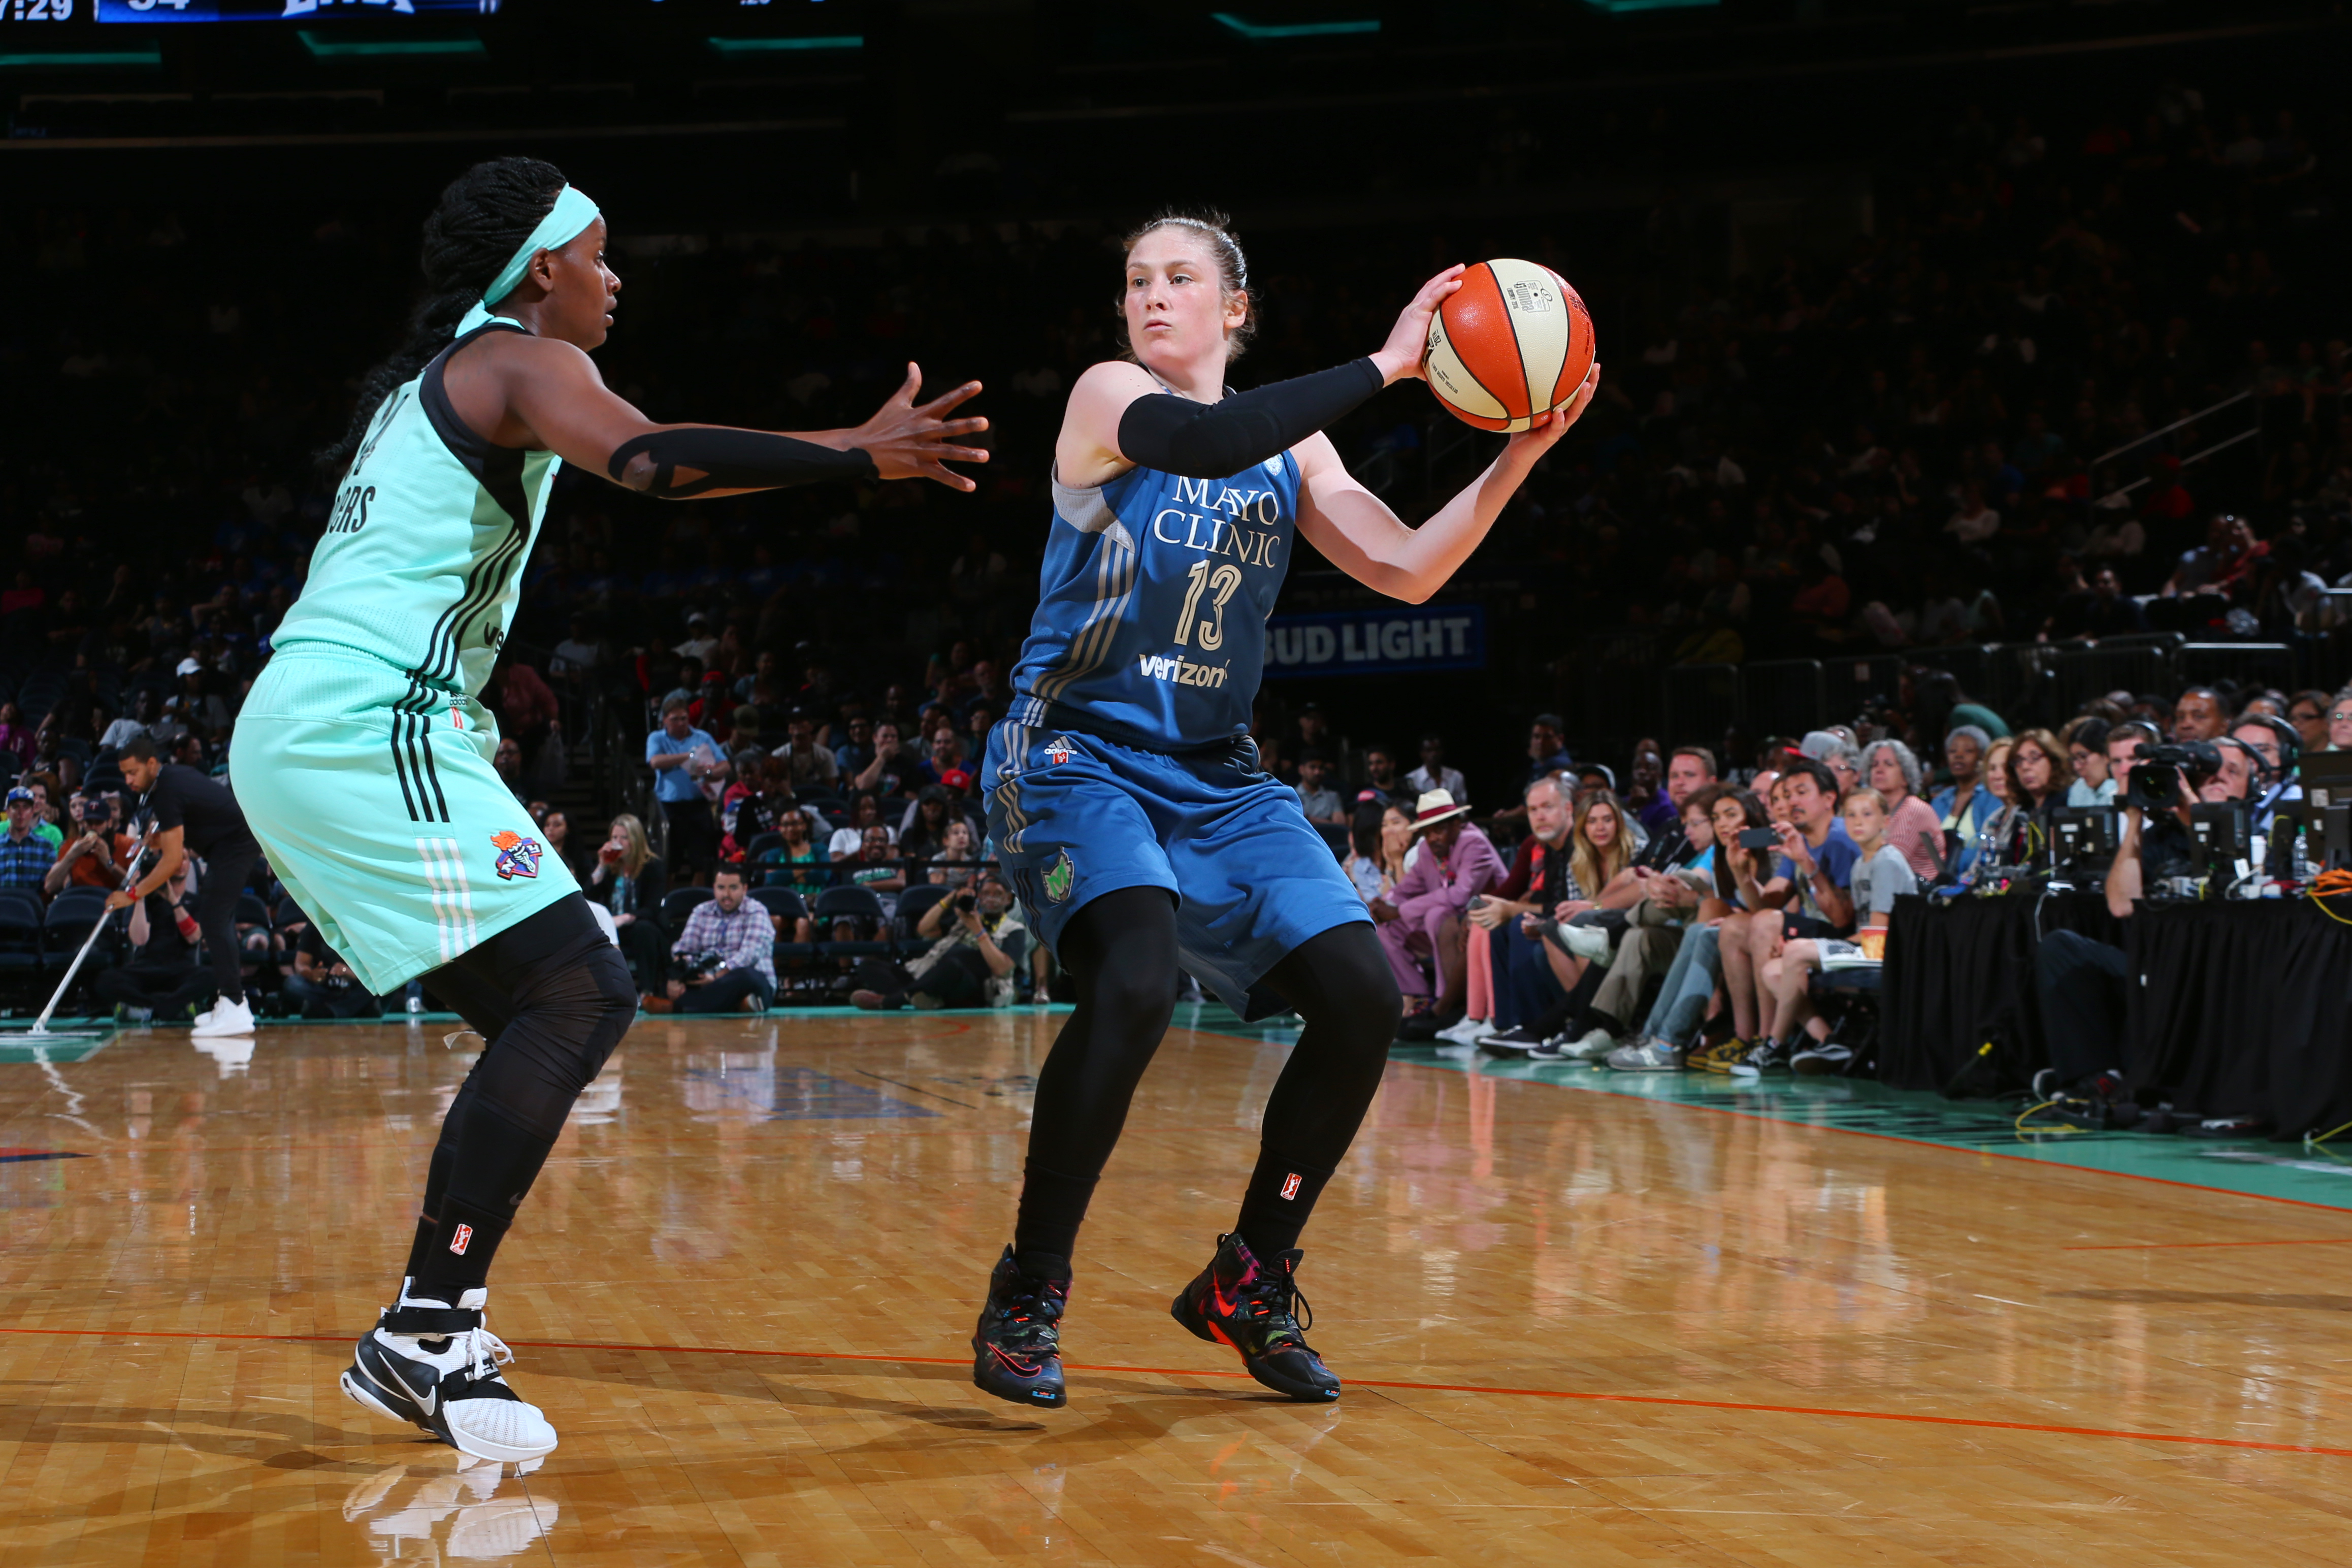 NEW YORK, NY - MAY 31: Lindsay Whalen #13 of the Minnesota Lynx defends the ball against the Minnesota Lynx during the game on May 31, 2016 at Madison Square Garden in New York, New York. NOTE TO USER: User expressly acknowledges and agrees that, by downloading and or using this Photograph, user is consenting to the terms and conditions of the Getty Images License Agreement. Mandatory Copyright Notice: Copyright 2016 NBAE (Photo by Mike Stobe/NBAE via Getty Images)